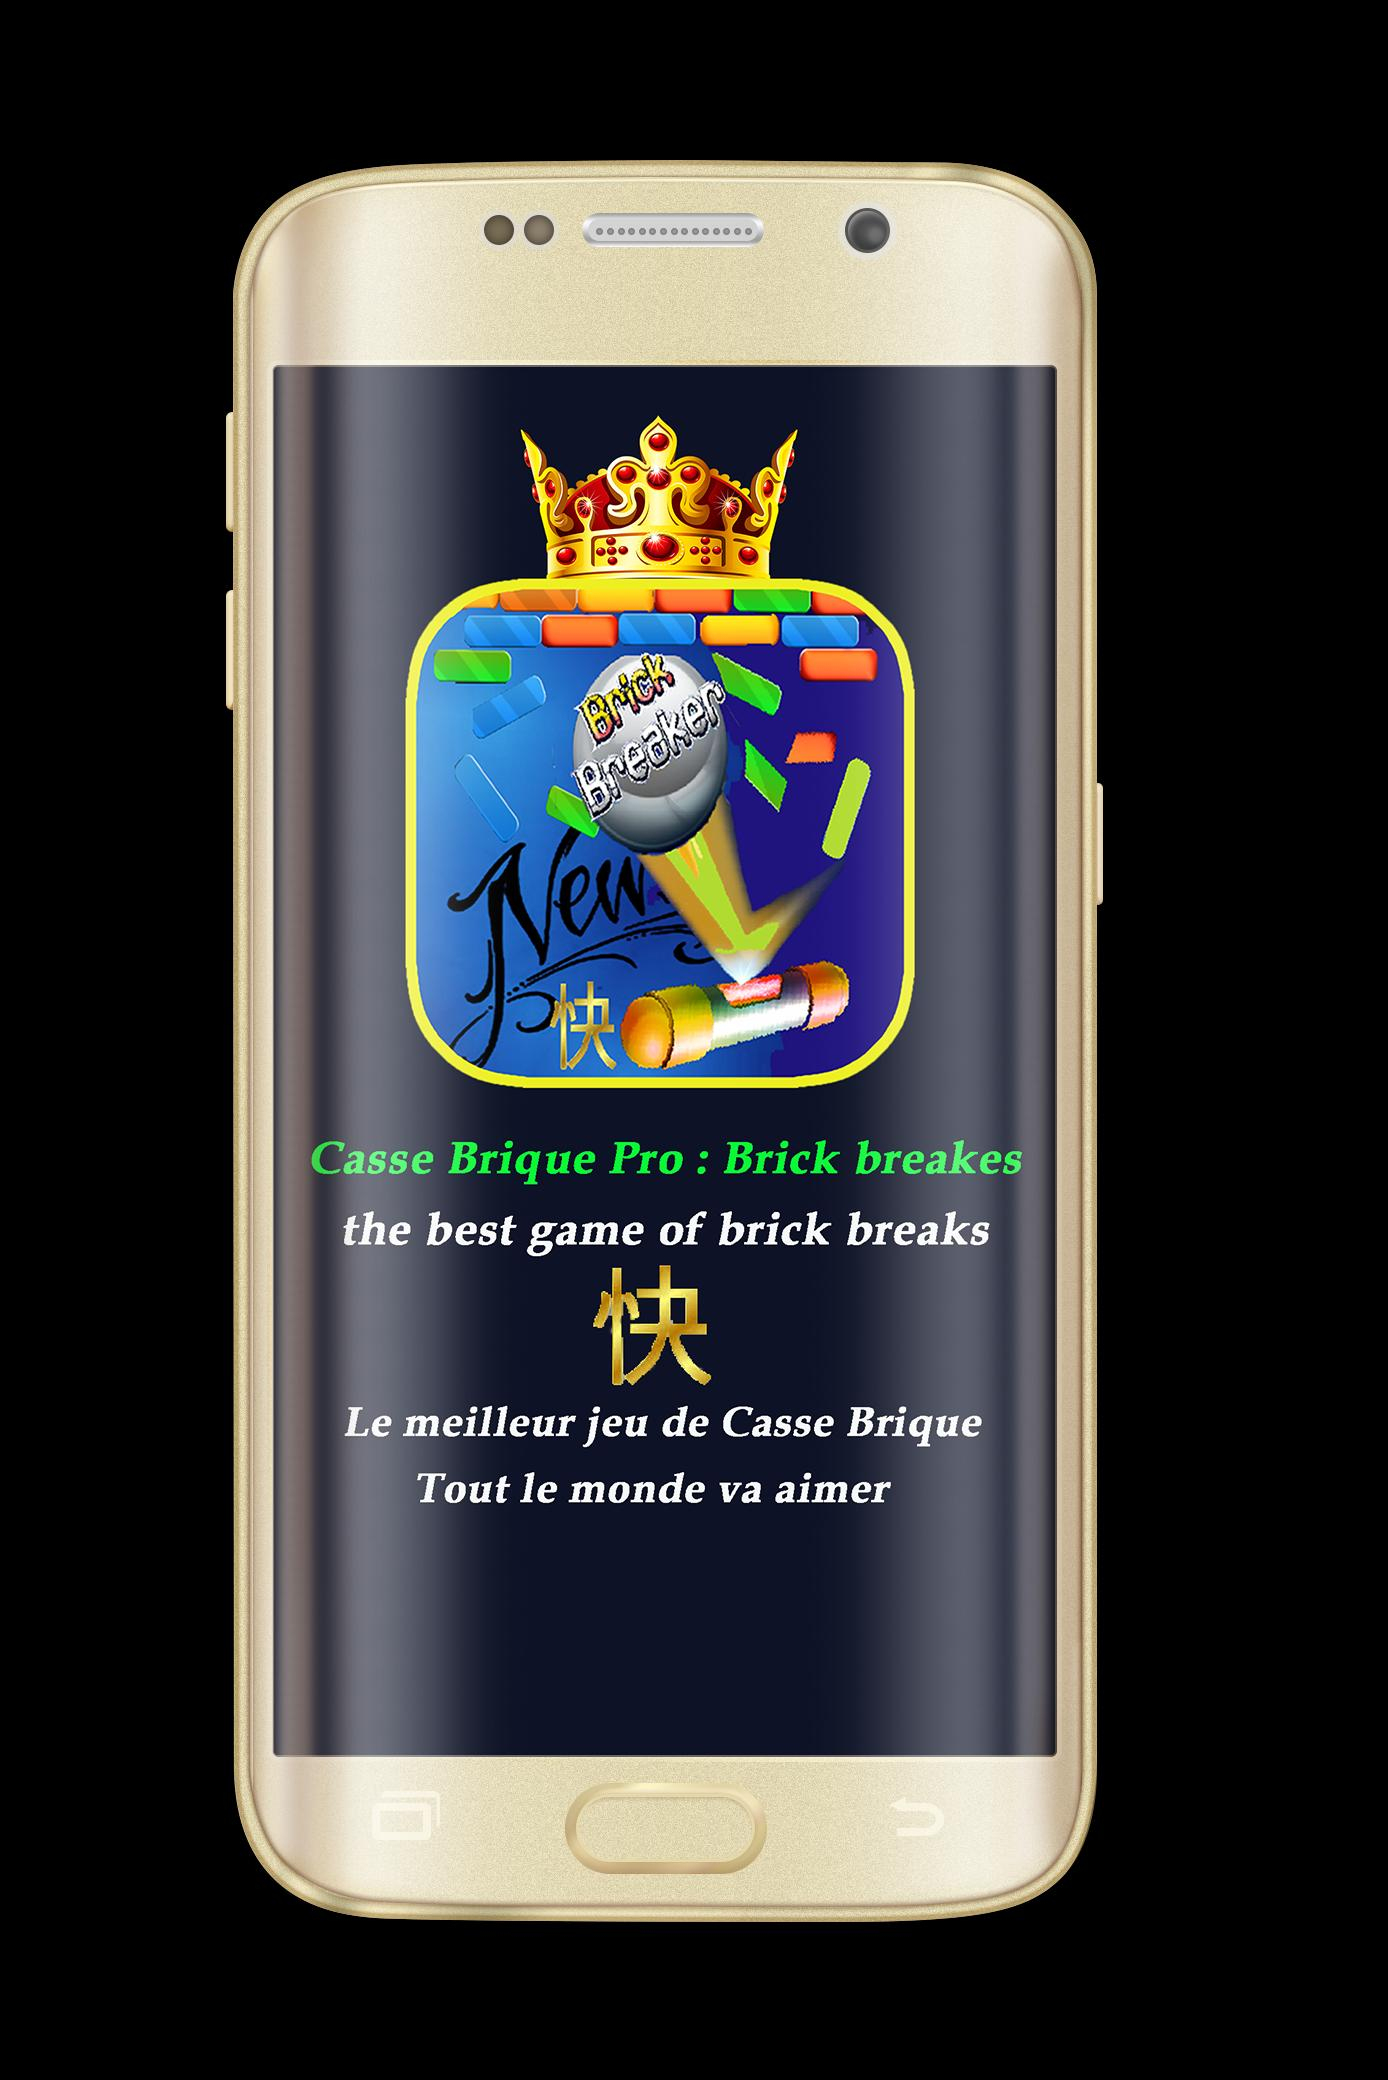 Casse Brique Pro : Brick Breakes For Android - Apk Download avec Jeu Casse Brique